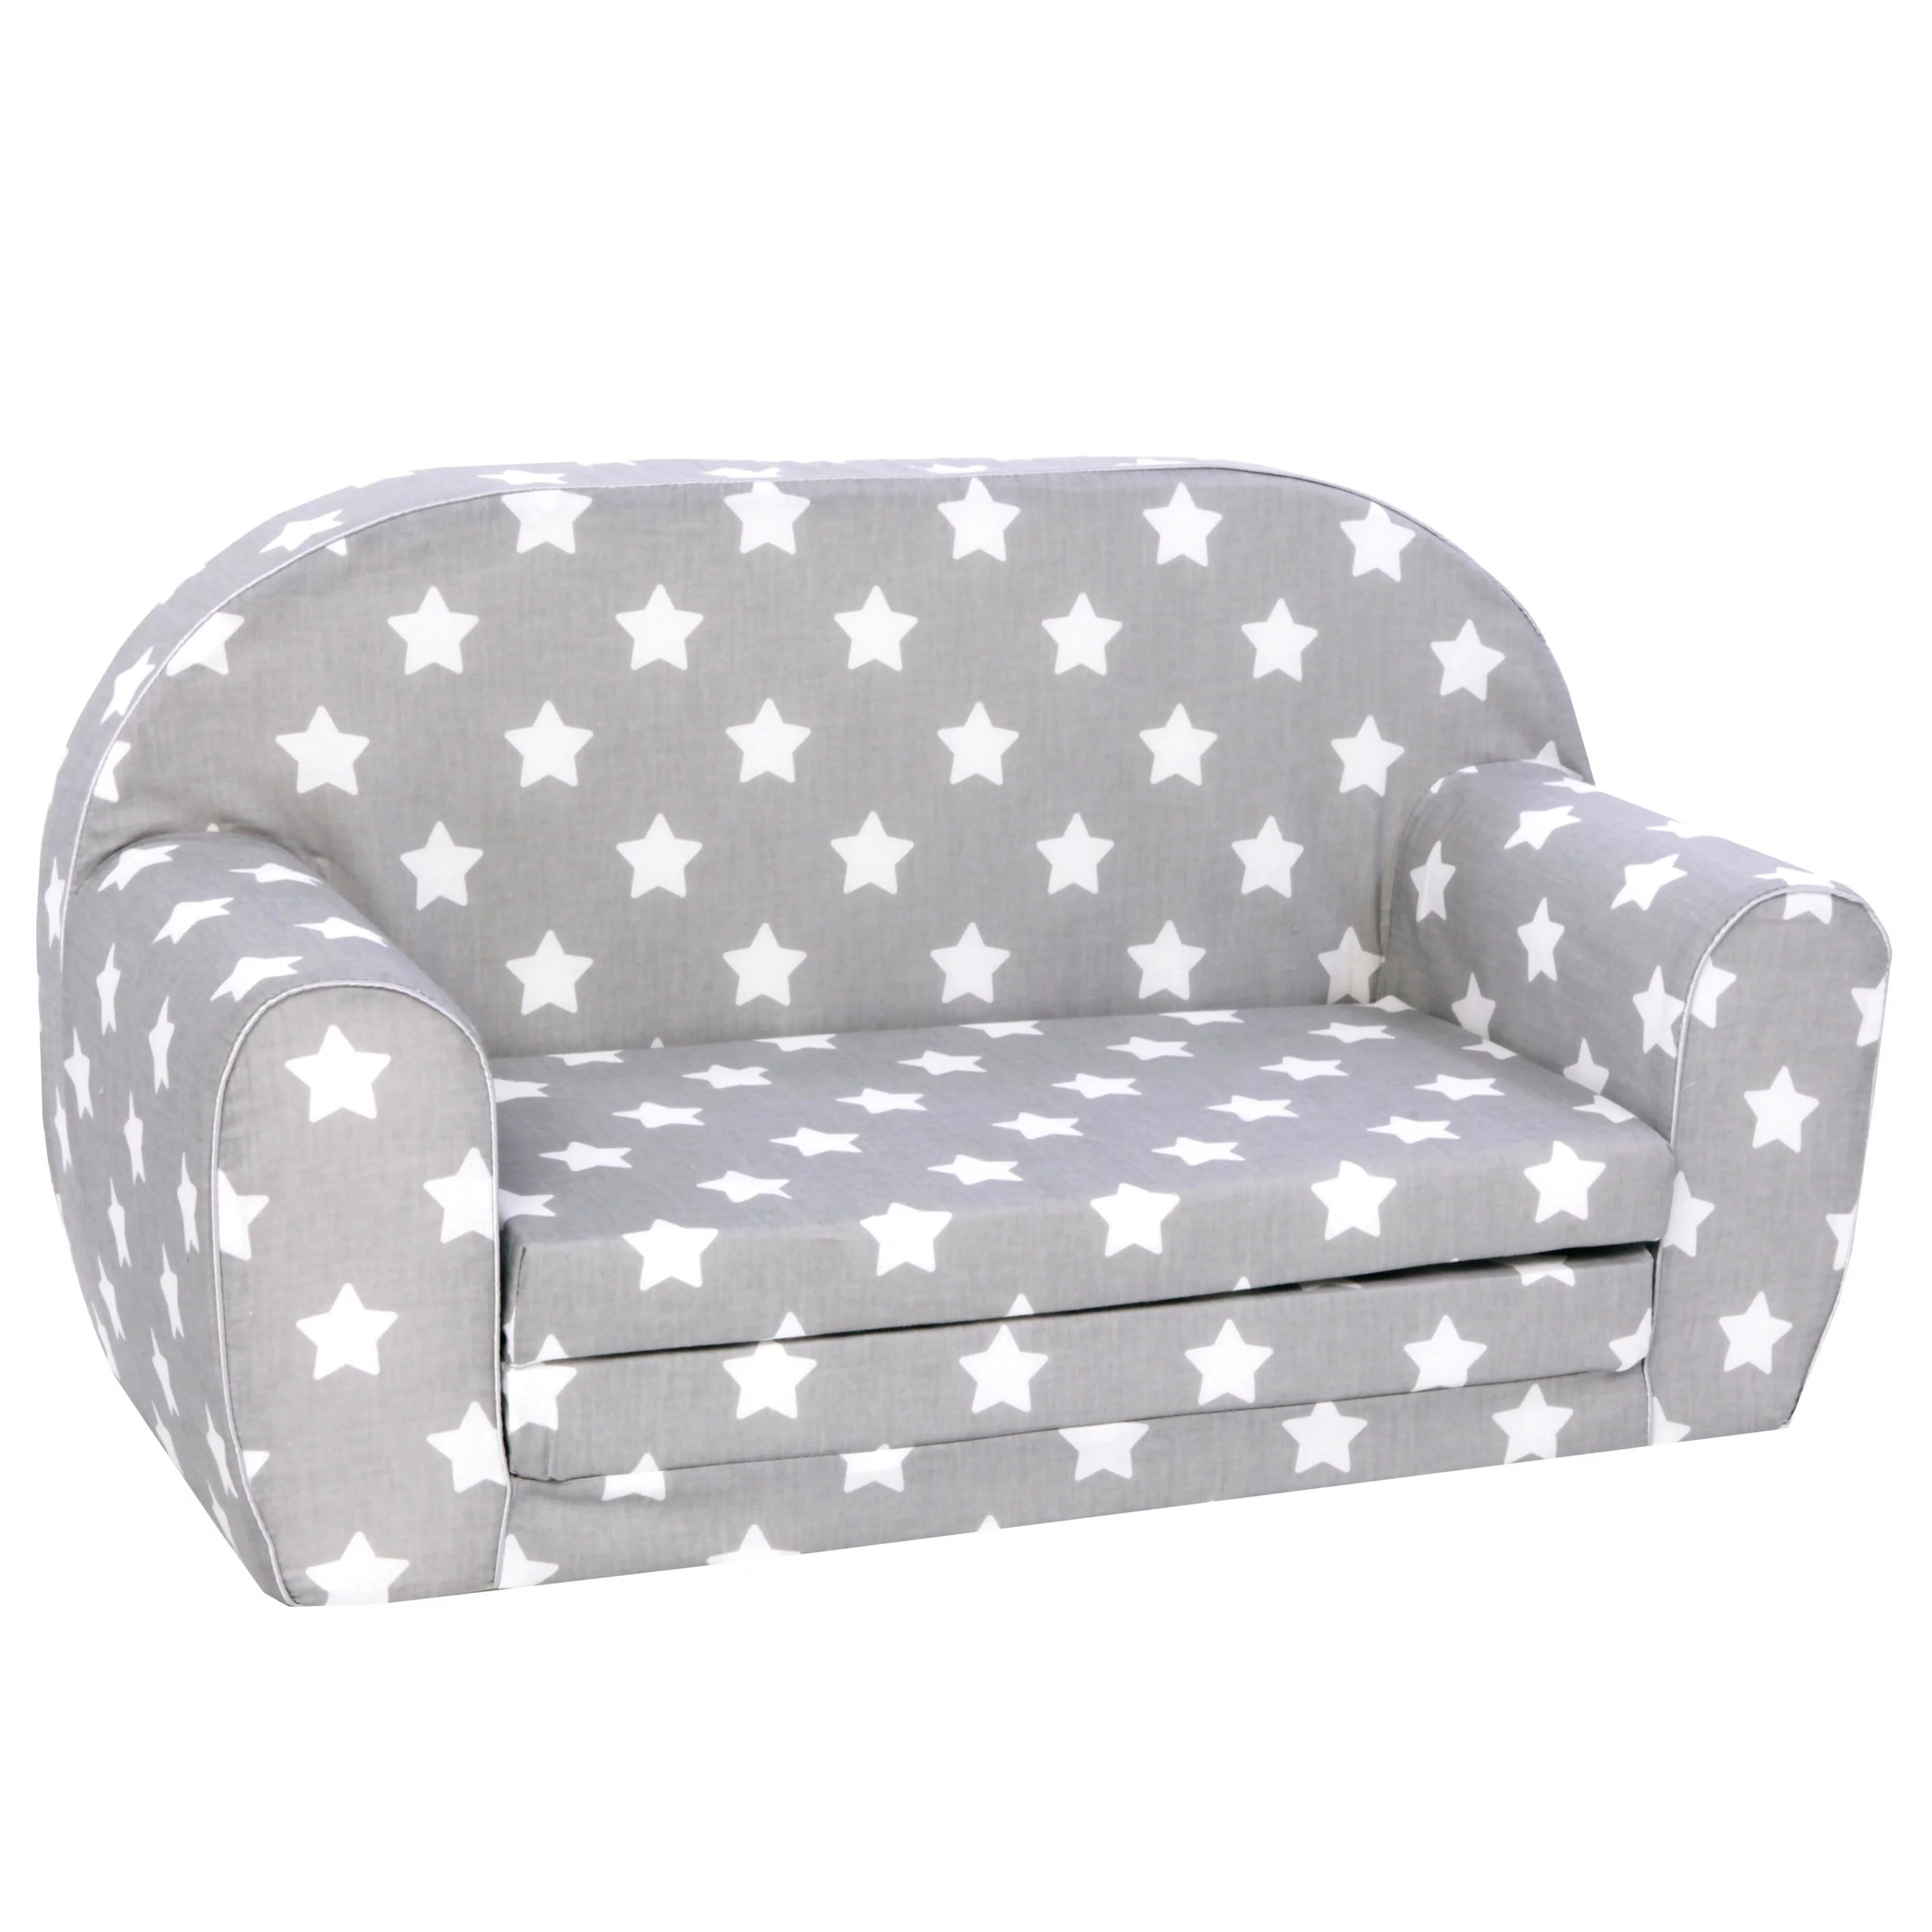 delsit toddler couch kids sofa european made children s 2 in 1 flip open foam double sofa kids folding sofa kids couch comfy fold out lounge